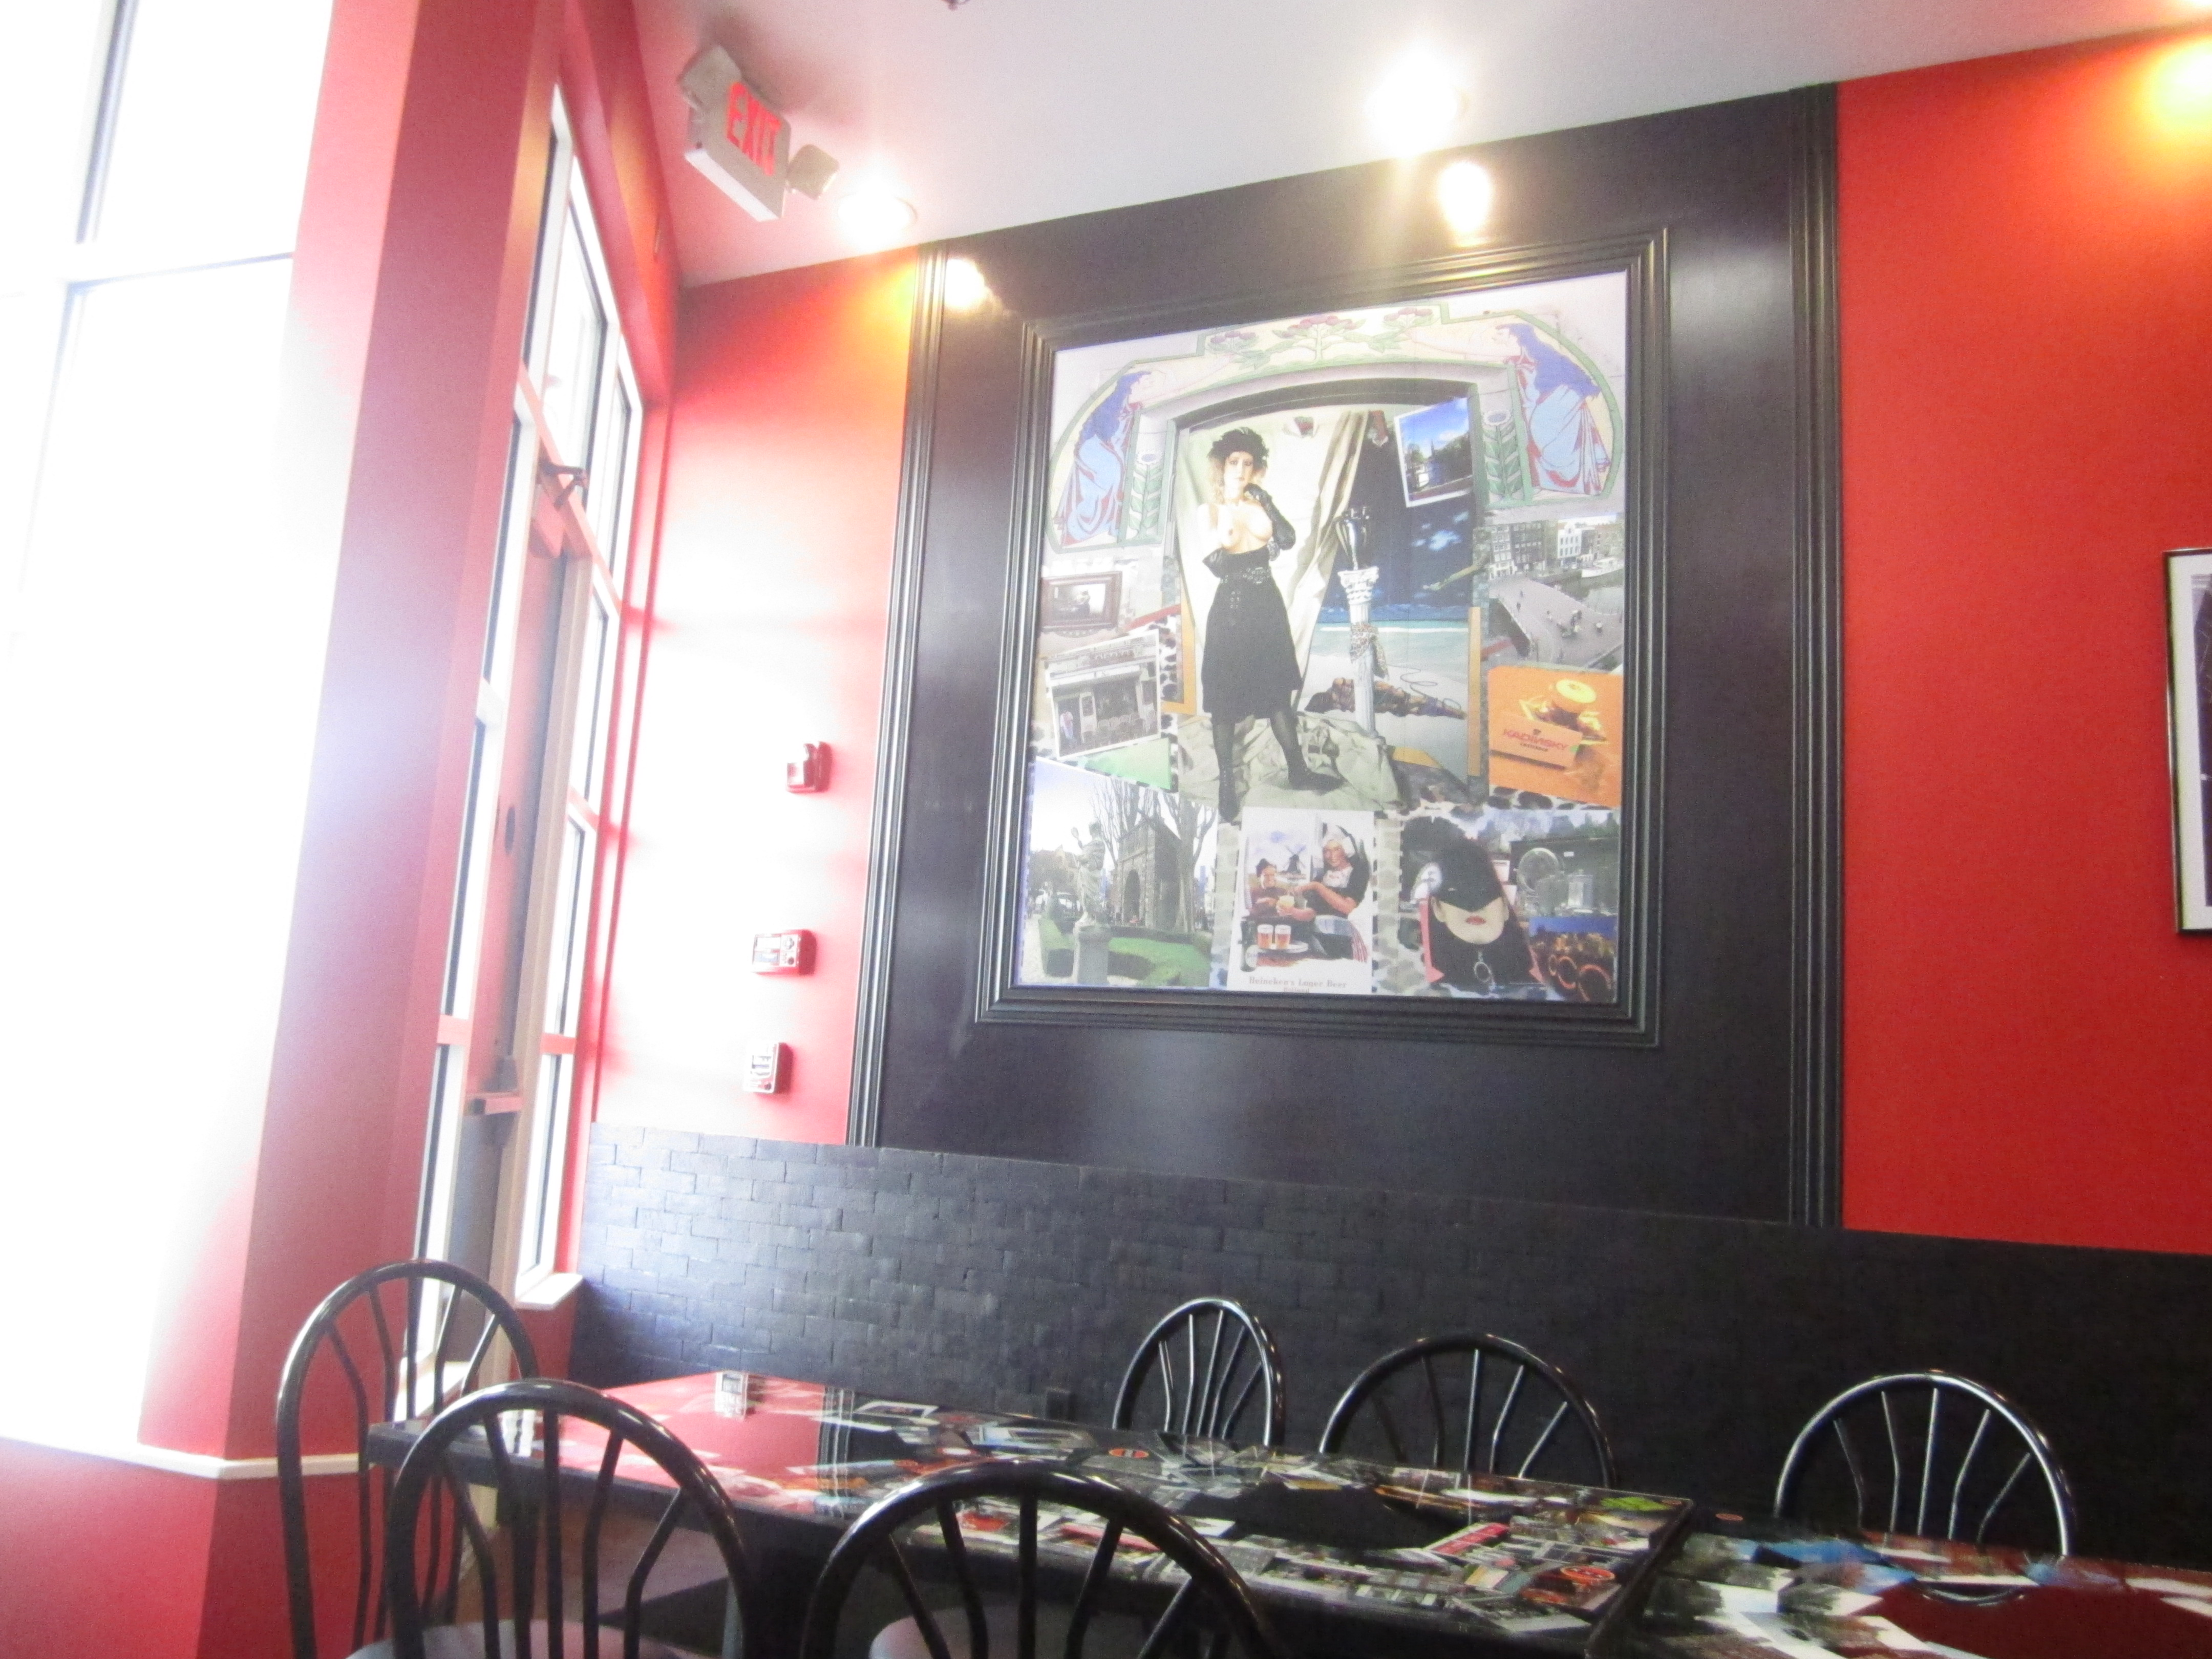 Blue apron falafel - Upon Entrance There Is Some Fairly Provocative Art Work The Tables Have Fun Photographs Of Falafel Shops In Other Countries